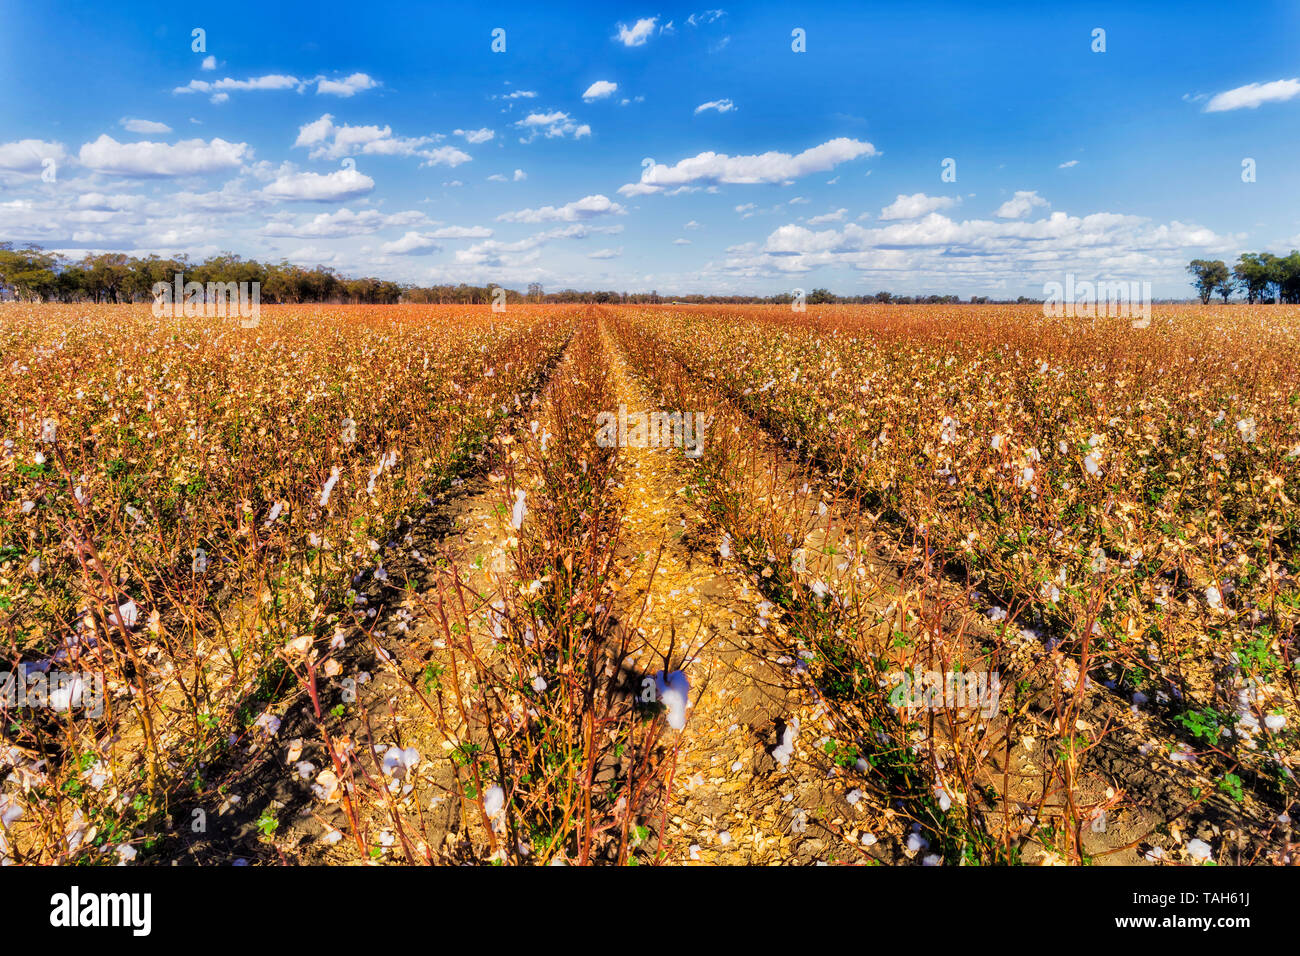 Cultivated agricultural field of blossoming cotton plants in Australian NSW moree plains region on a sunny hot day above long diminishing rows. - Stock Image